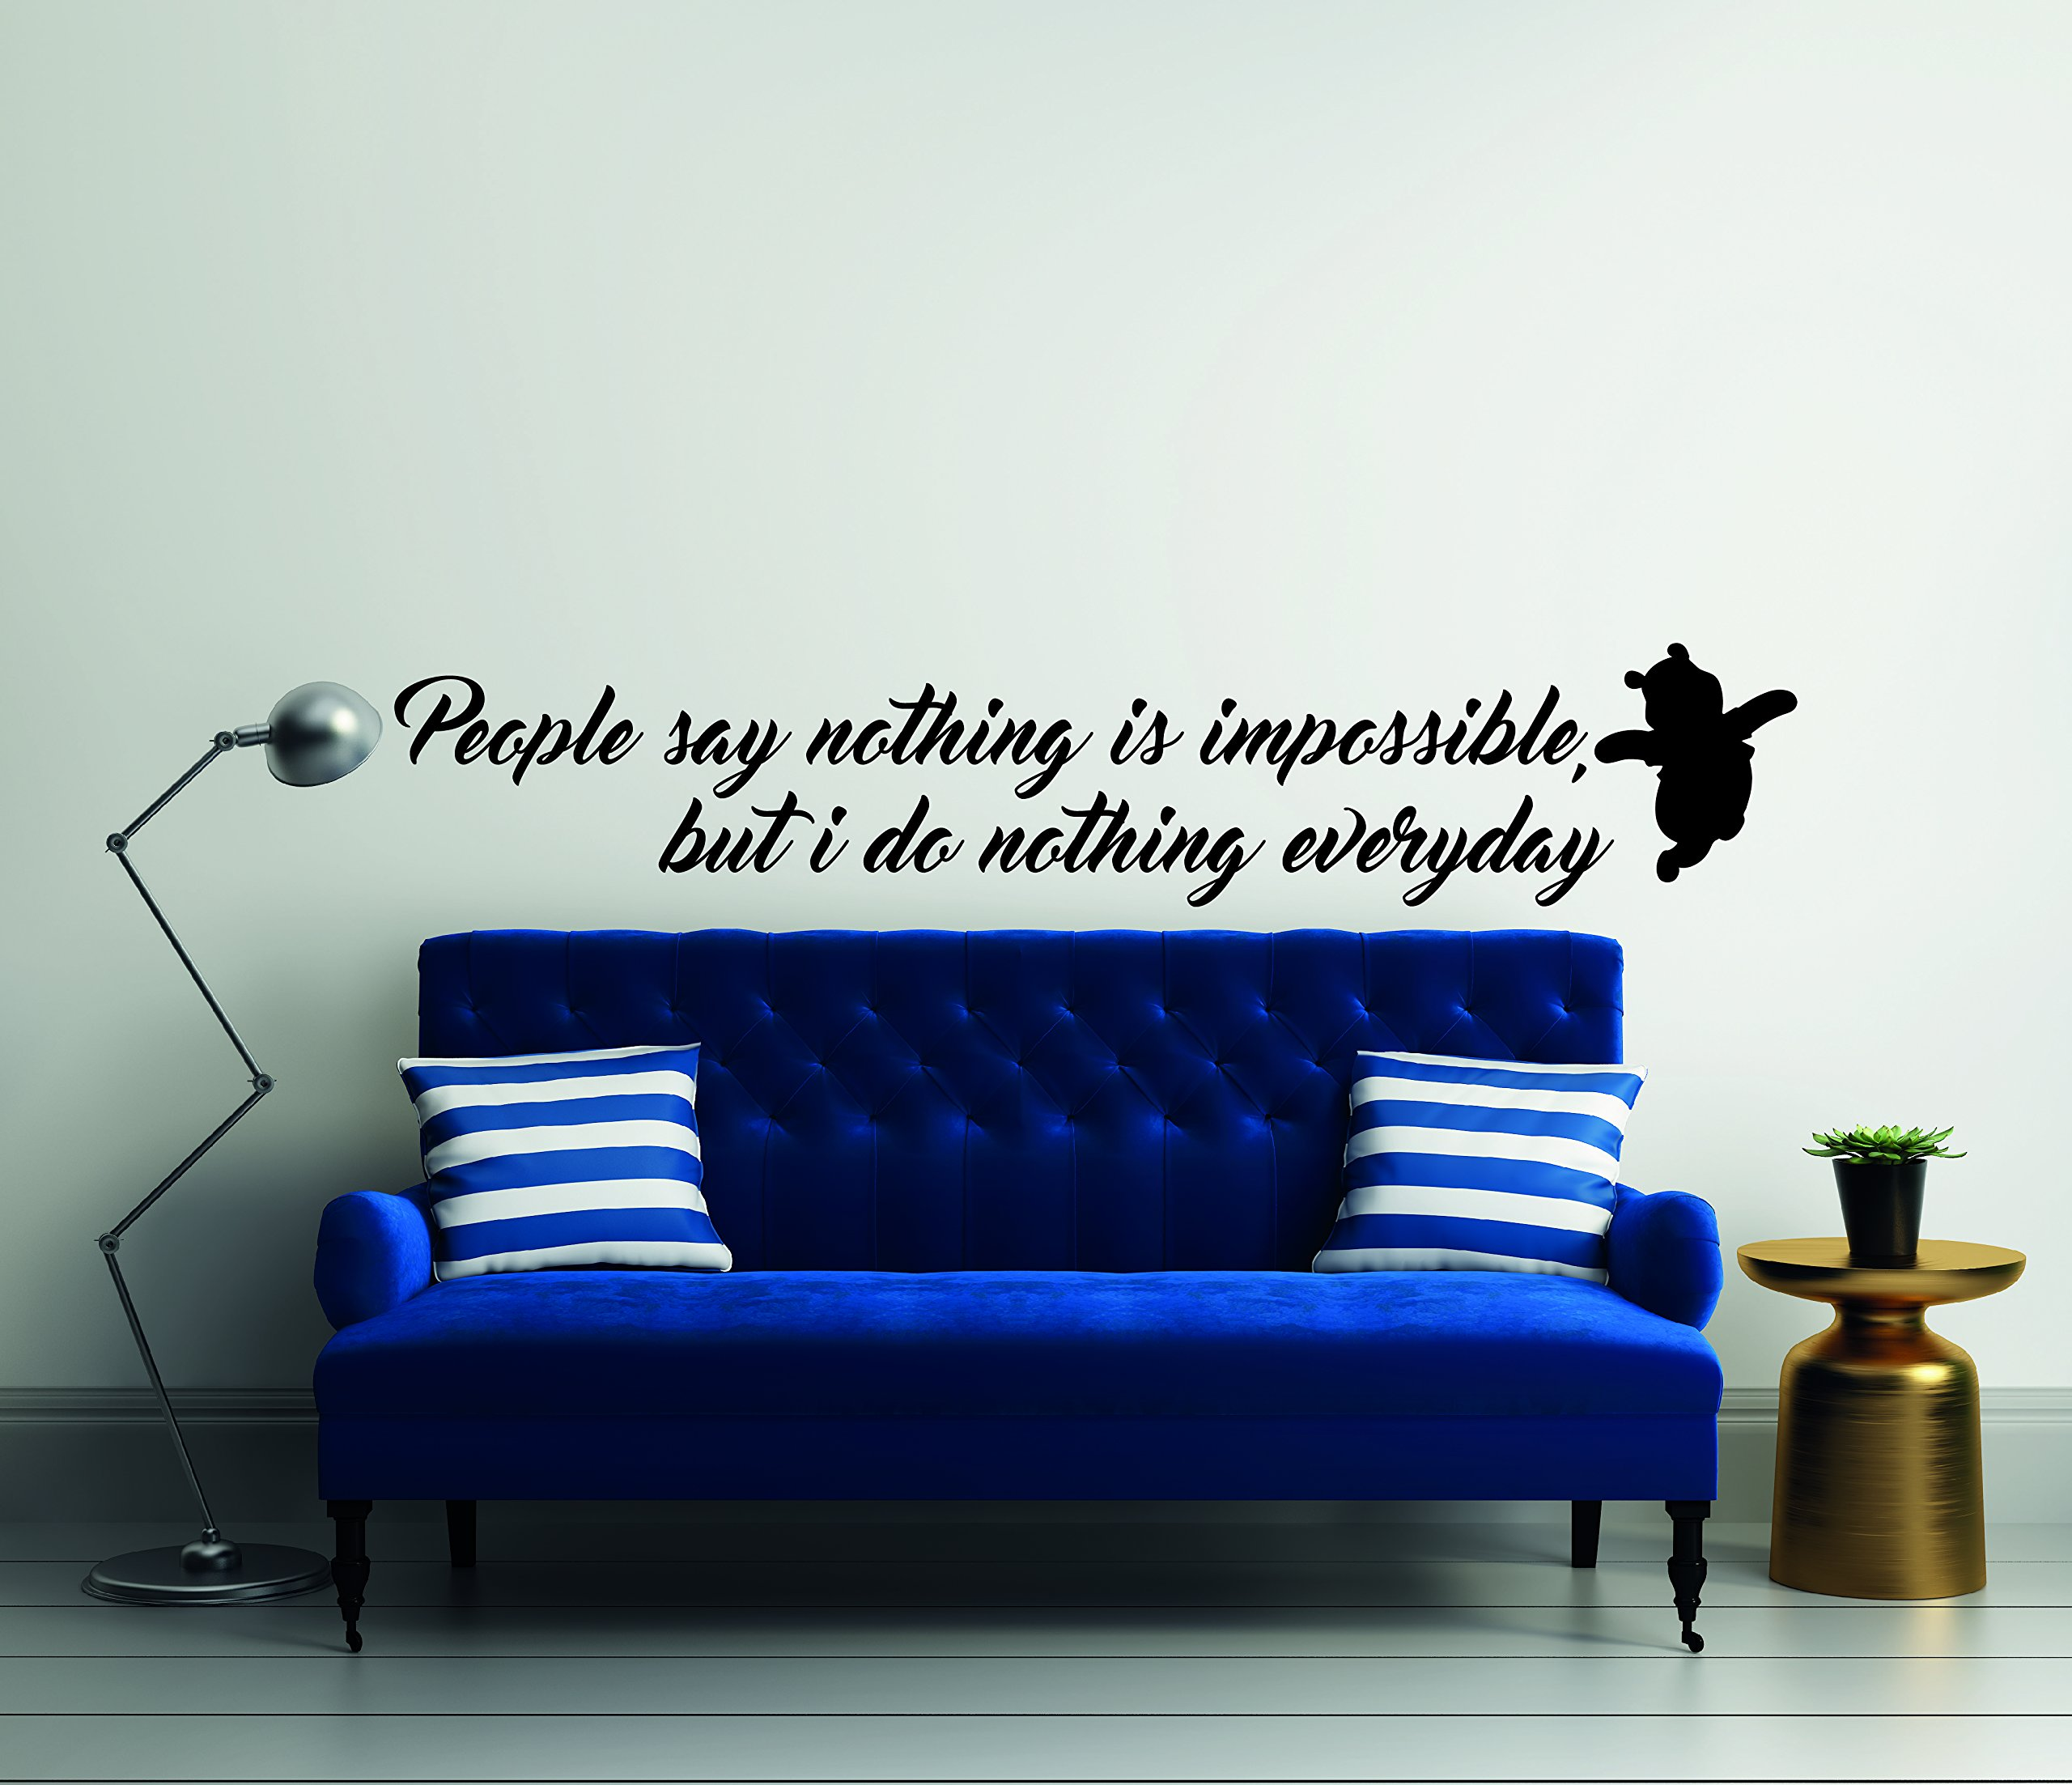 People Say Nothing Is Impossible but I Do Nothing Everyday - A.A Milne- Winnieh The Pooh- Theme Neverland Quotes - Wall Decal For Home Bedroom Living Room